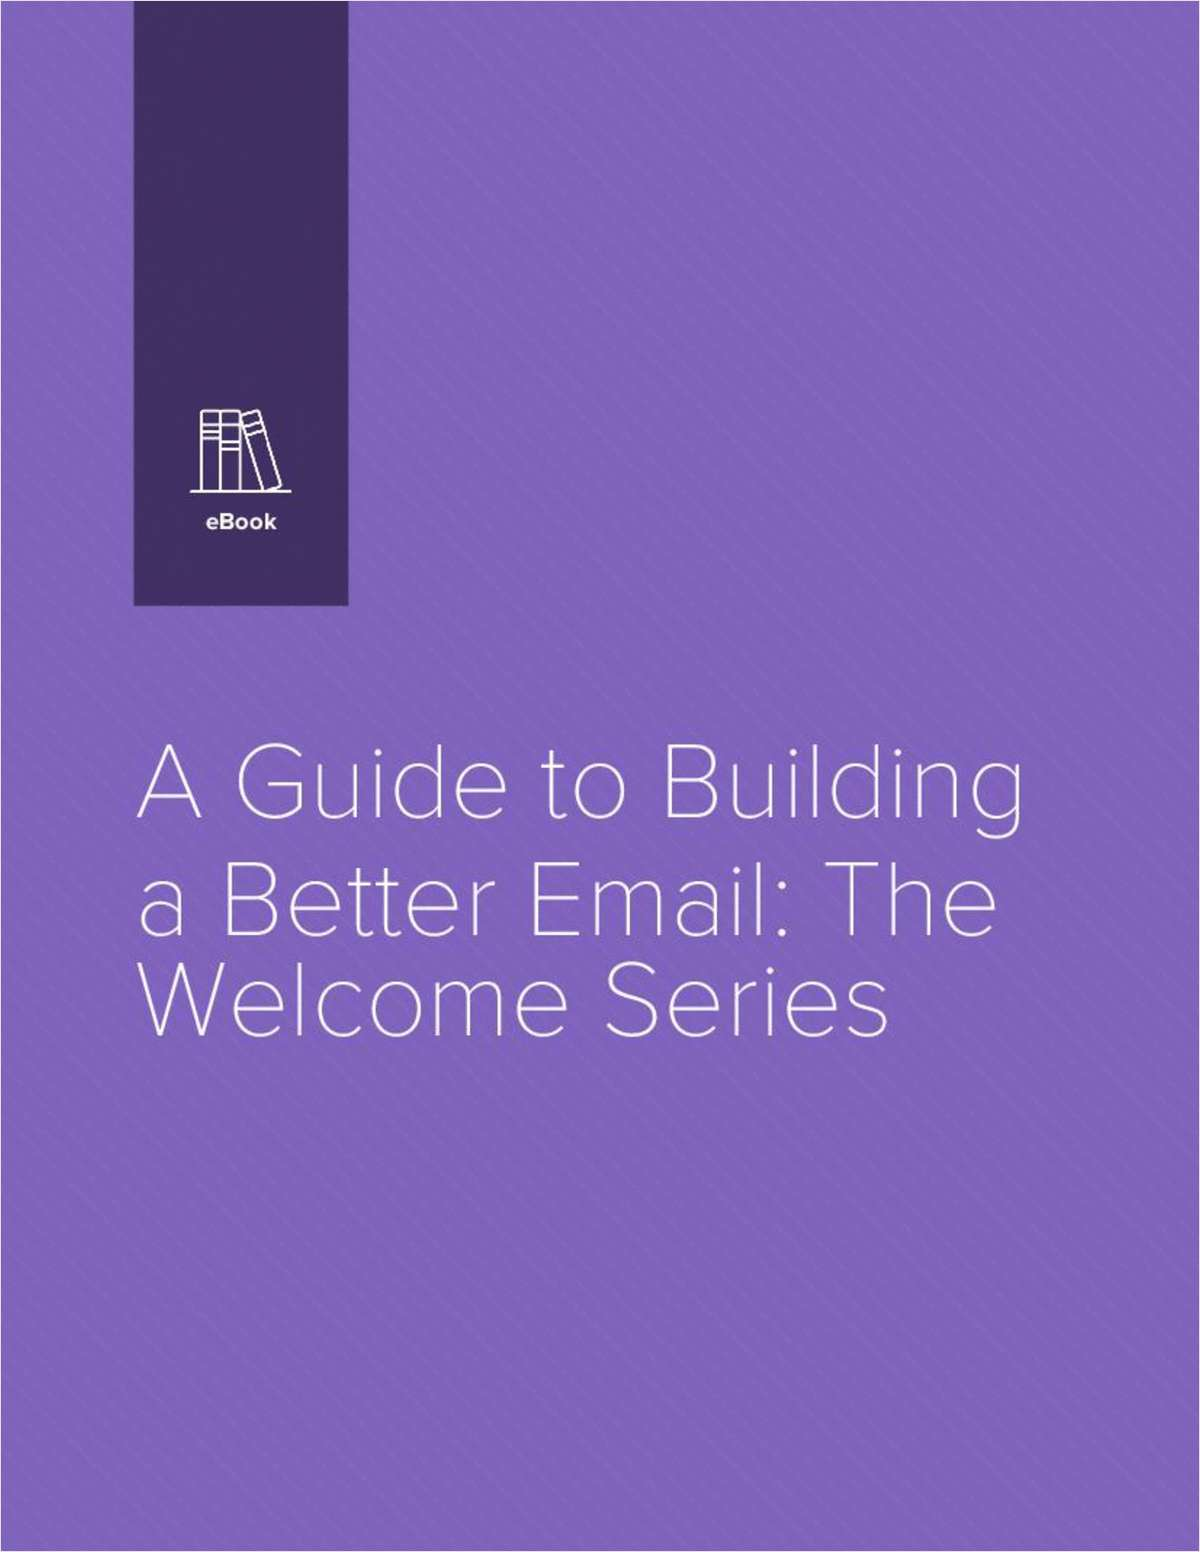 Build Better Welcome Emails: The Foundation for a Lasting Relationship With Your Customer